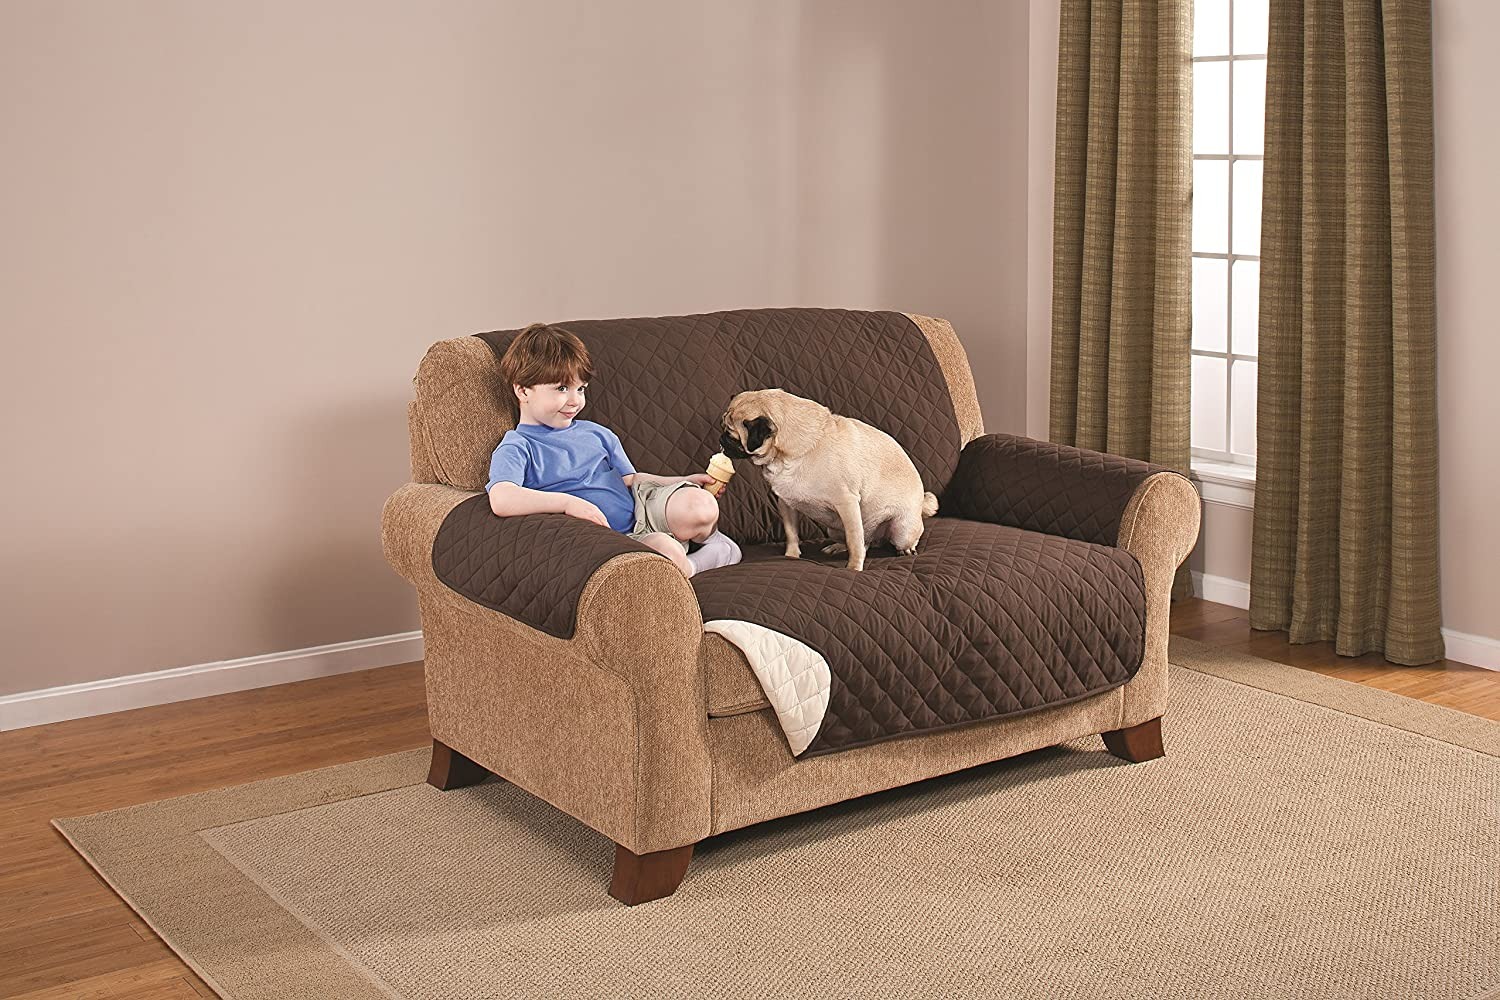 "Couch Guard Reversible LoveseatProtector/Cover, Sofa Slipcover Protects Furniture from Pets, Children, Stains. Quilted with Elastic Strap. Wash/Dry. 2 Colors/2 Great Looks! 75""x 88"" Chocolate/Tan"